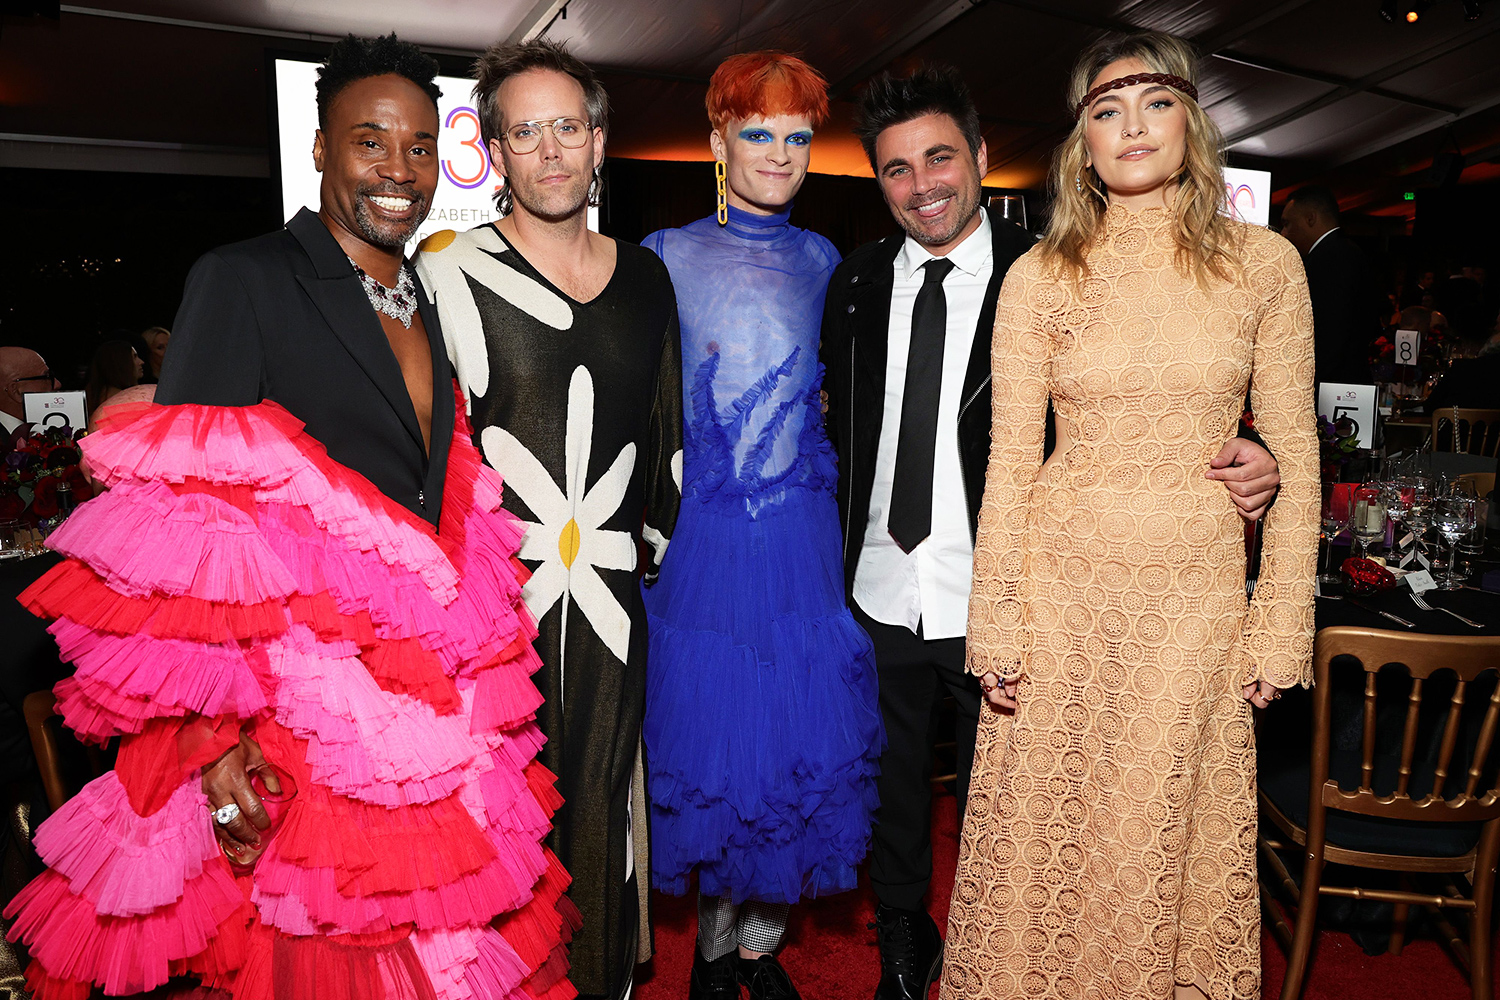 Billy Porter, Jake Wesley Rogers, Paris Jackson with guests, during The Elizabeth Taylor Ball To End AIDS on September 17, 2021 in West Hollywood, California.